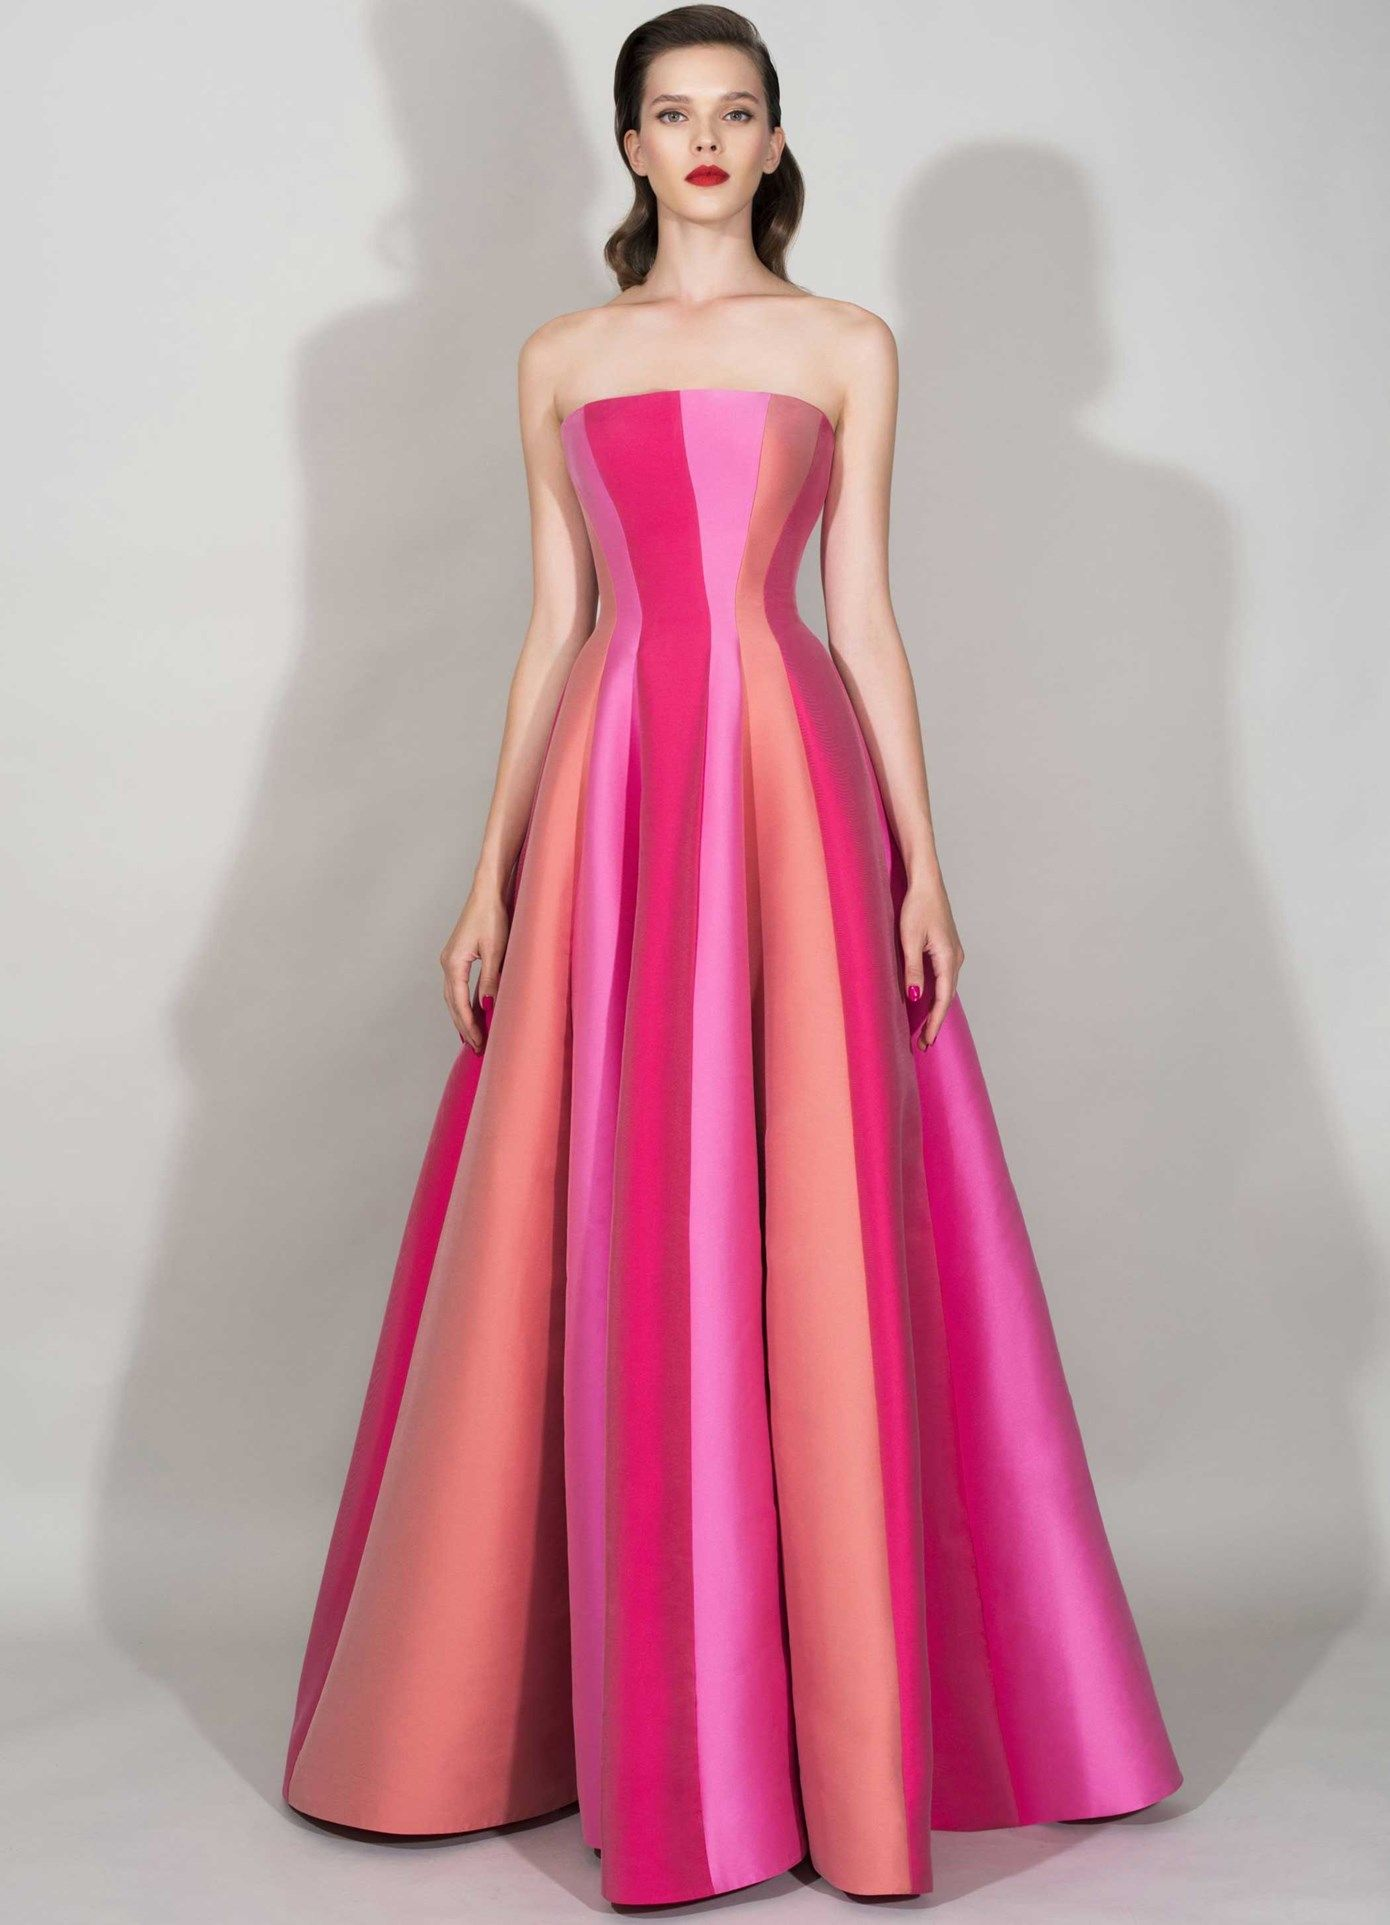 Zuhair Murad | Resort 2016 | Projects to Try | Pinterest | Alta ...